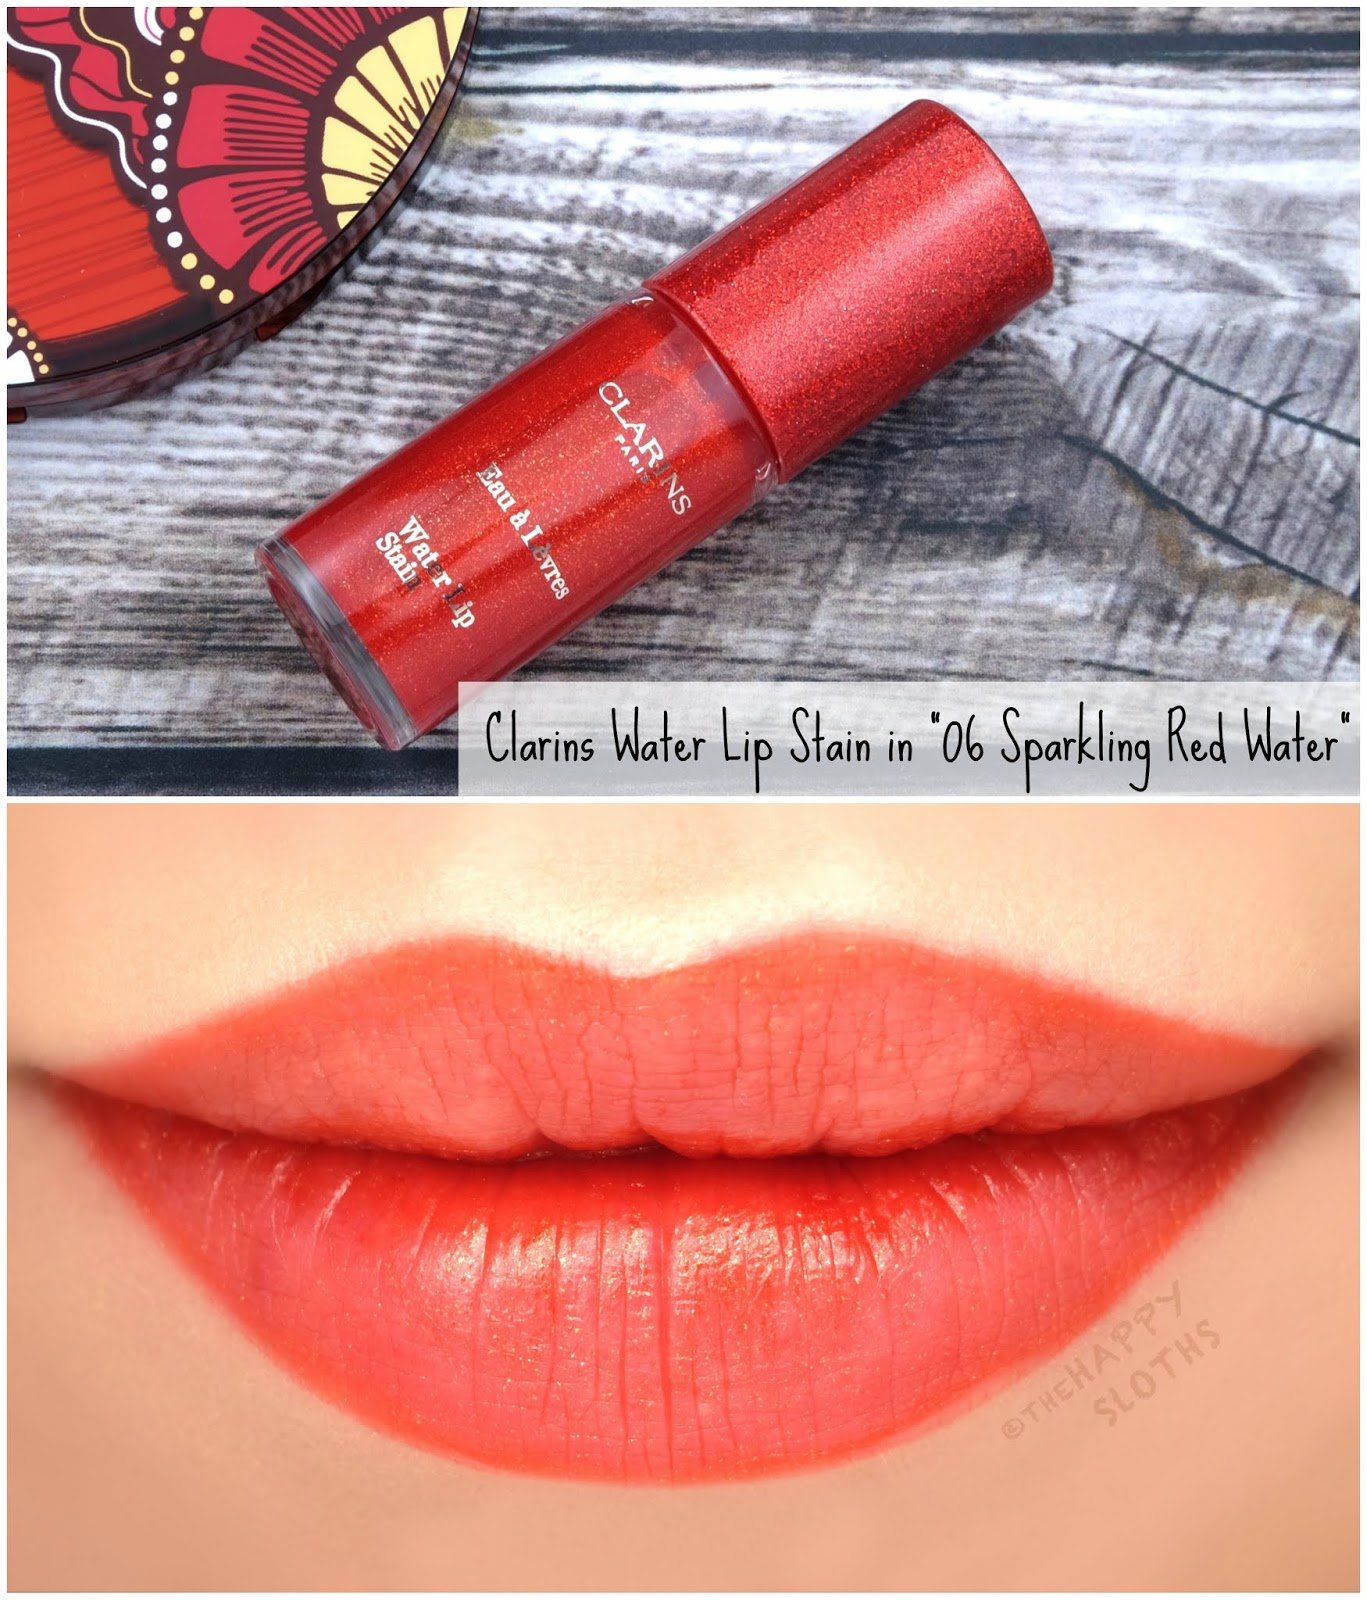 "Clarins | Summer 2019 Collection | Water Lip Stain in ""06 Sparkling Red Water"": Review"